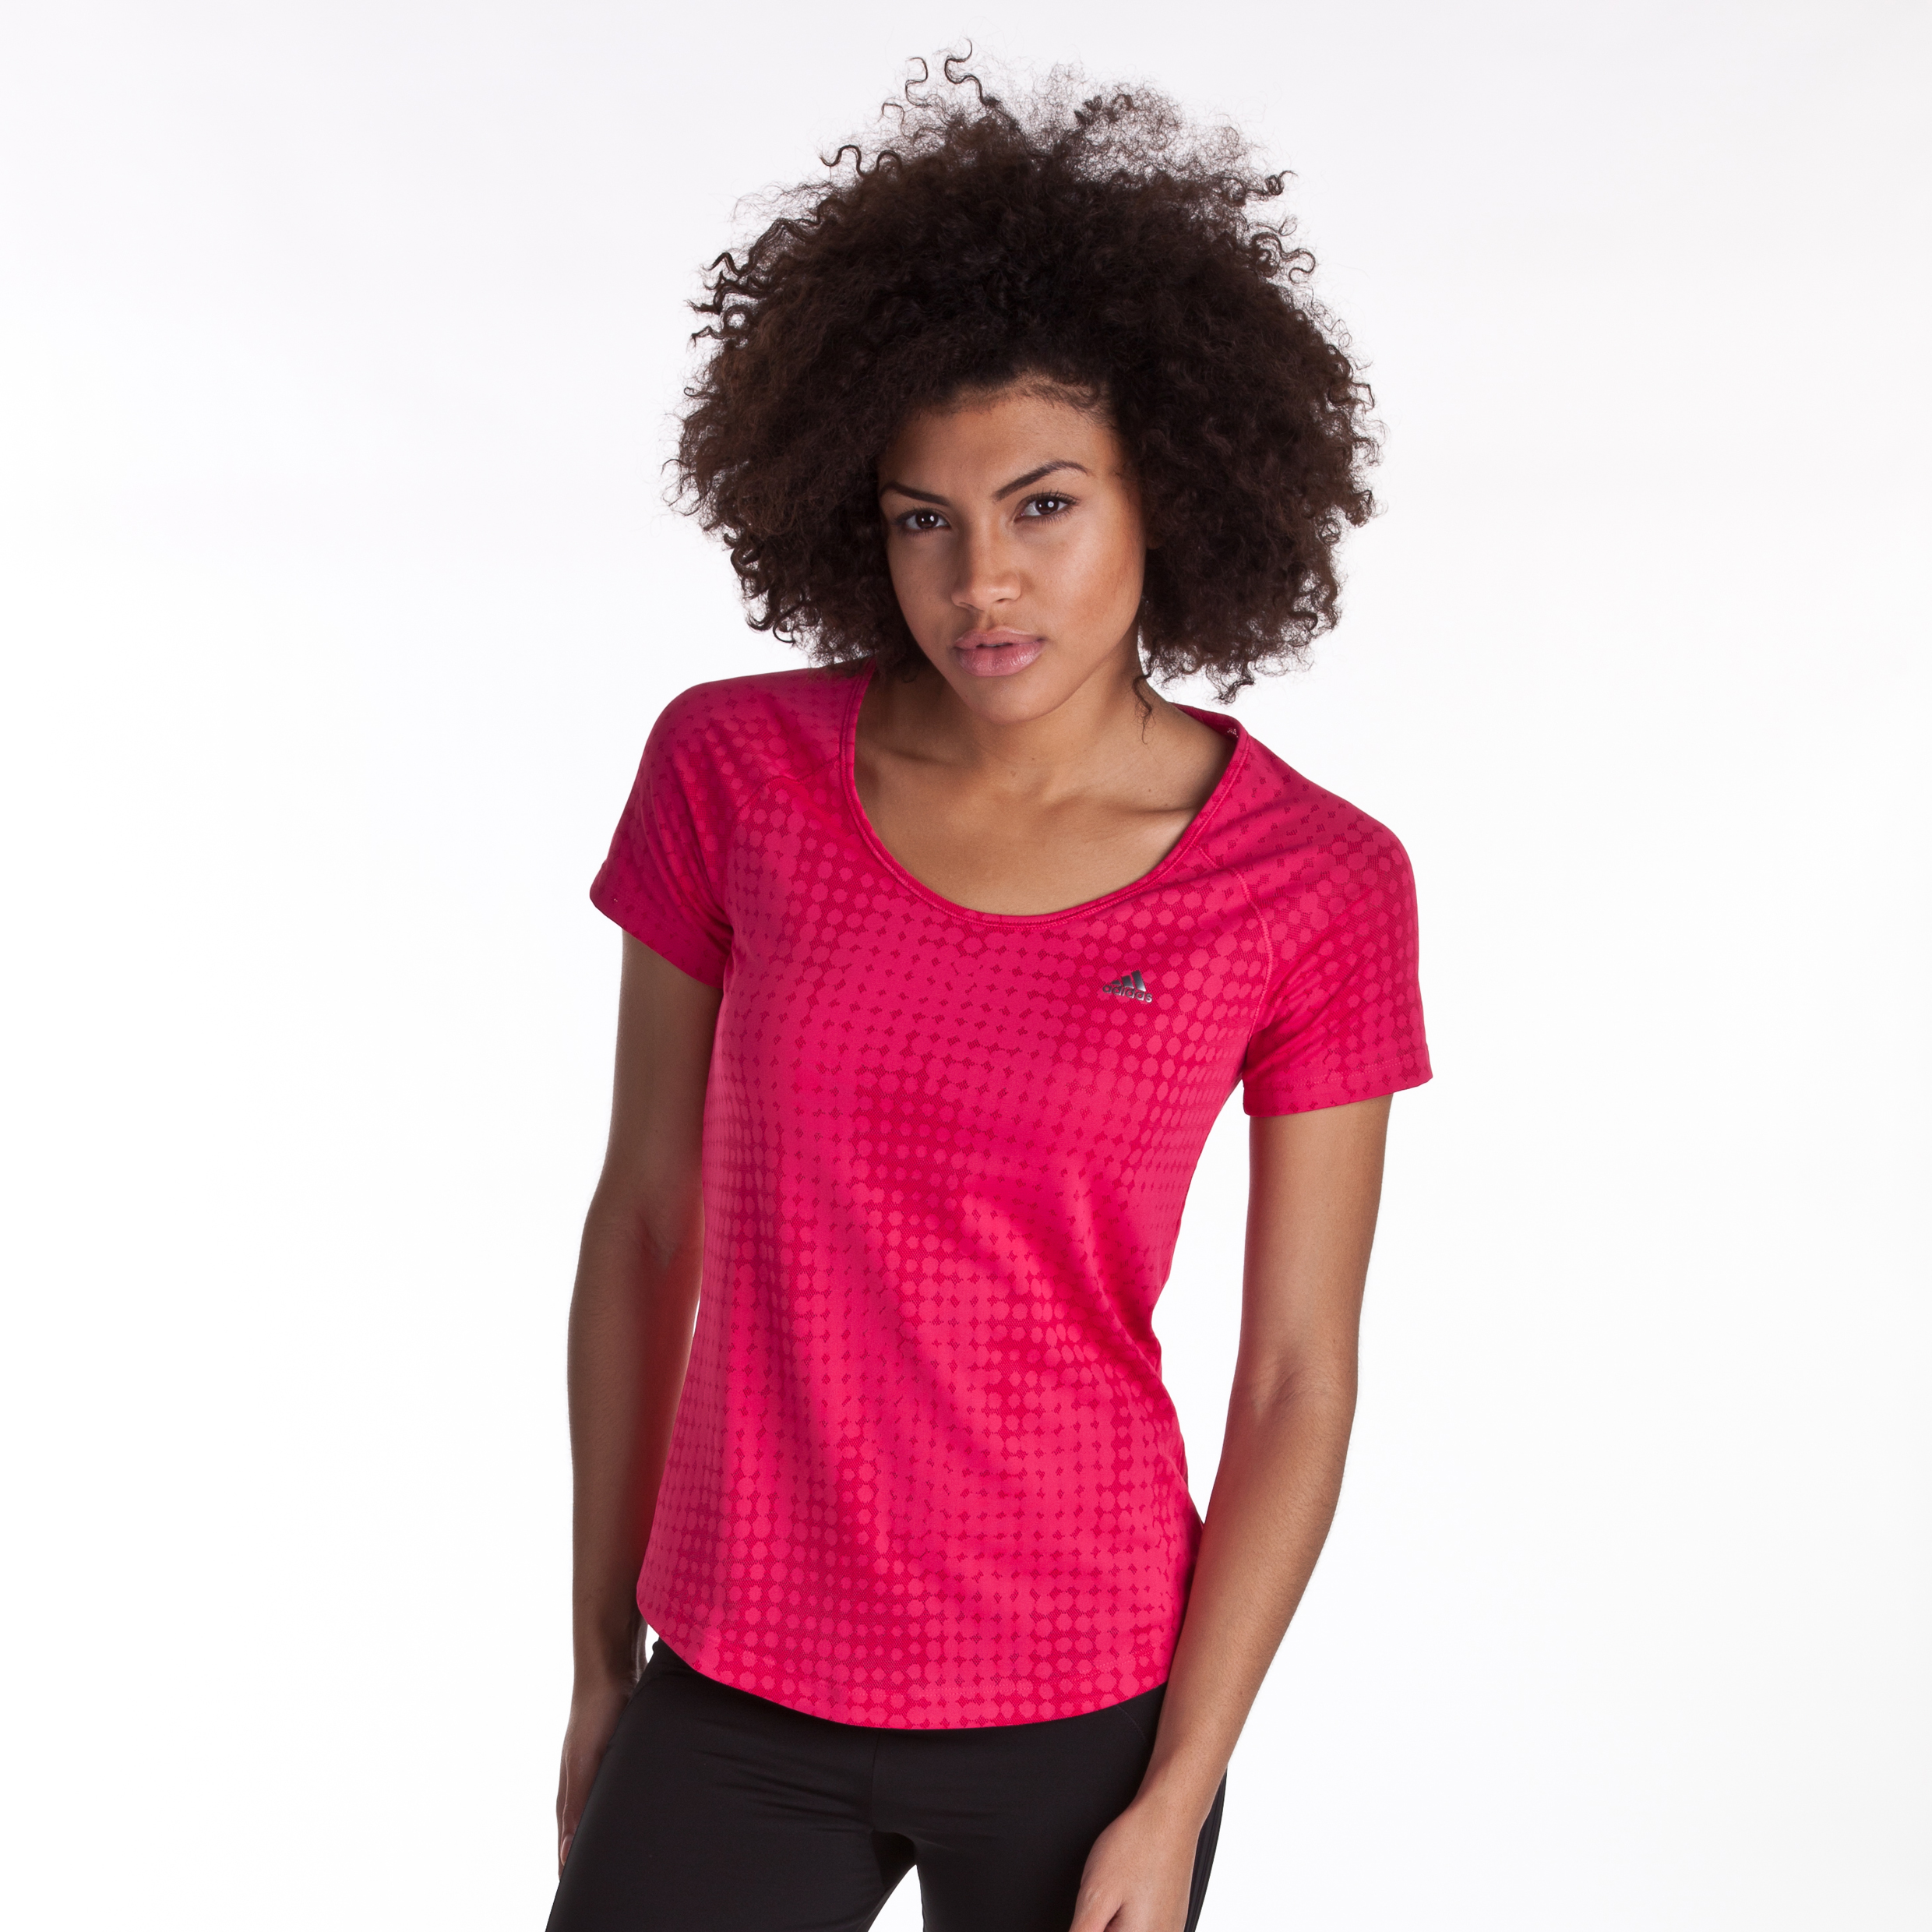 Adidas CLIMACOOL Training Studio Tee - Bright Pink - Womens